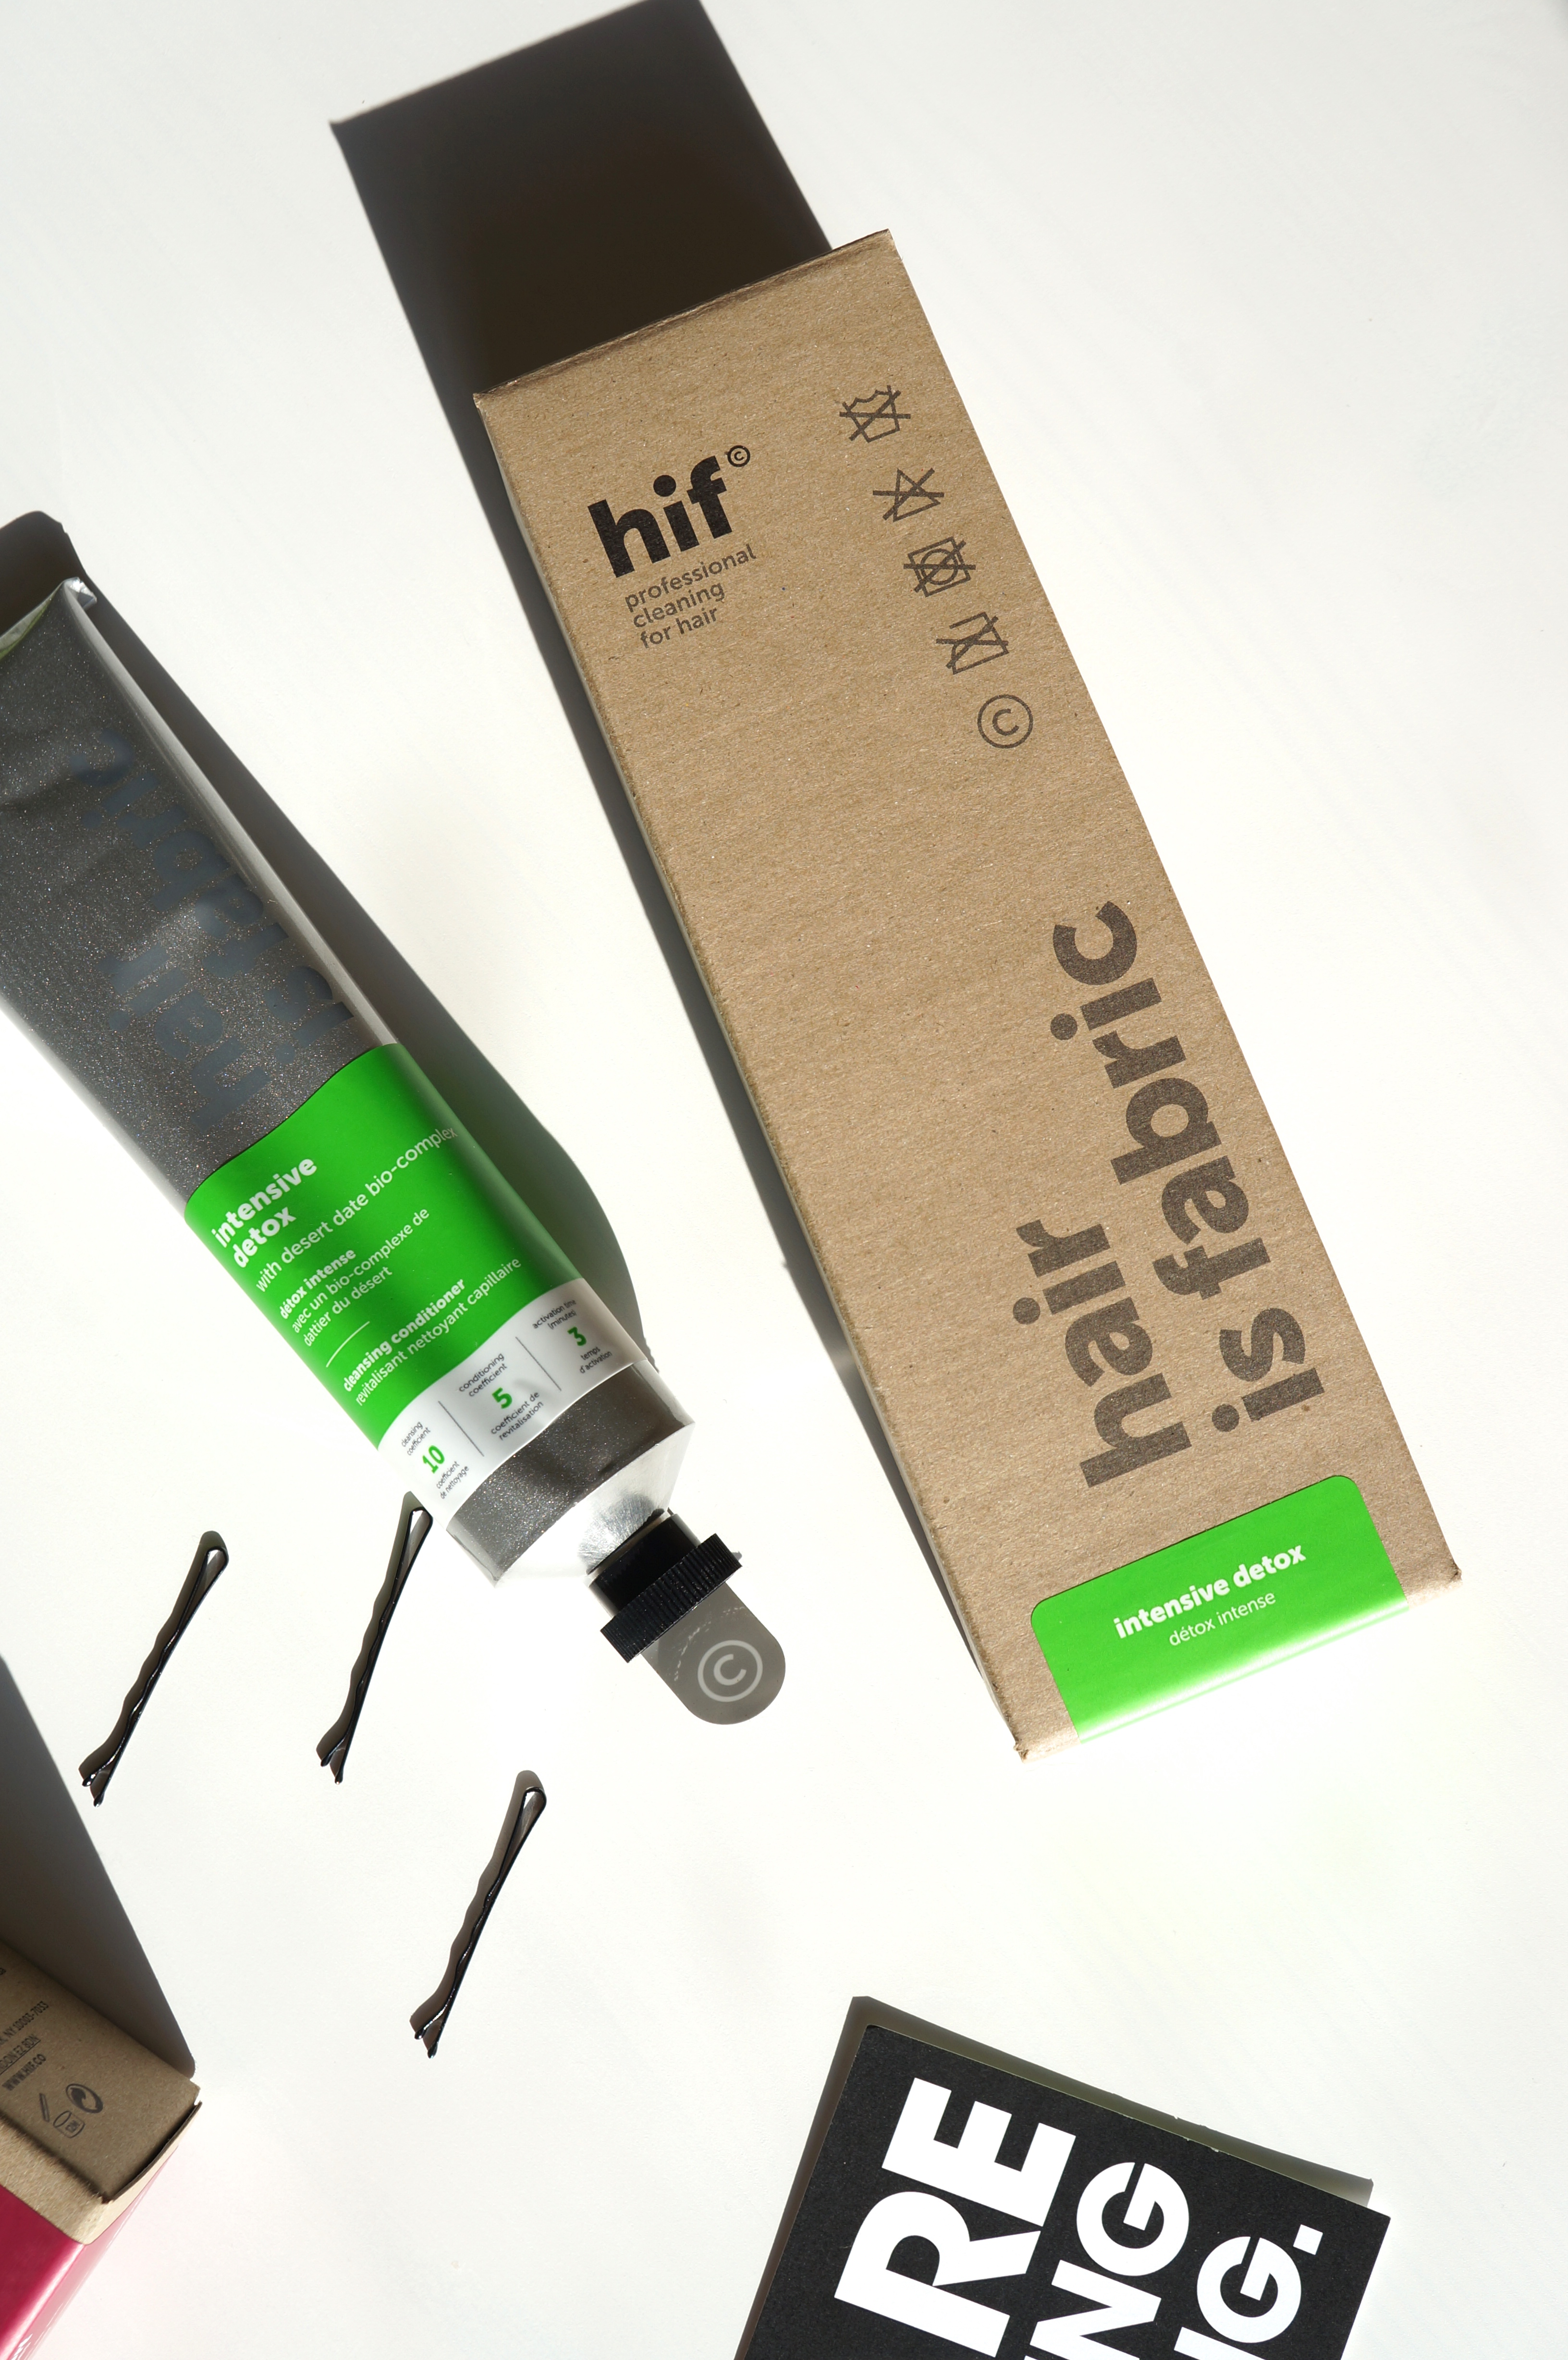 HIF Intensive Detox by Deciem/ Pic by 1FDLE.